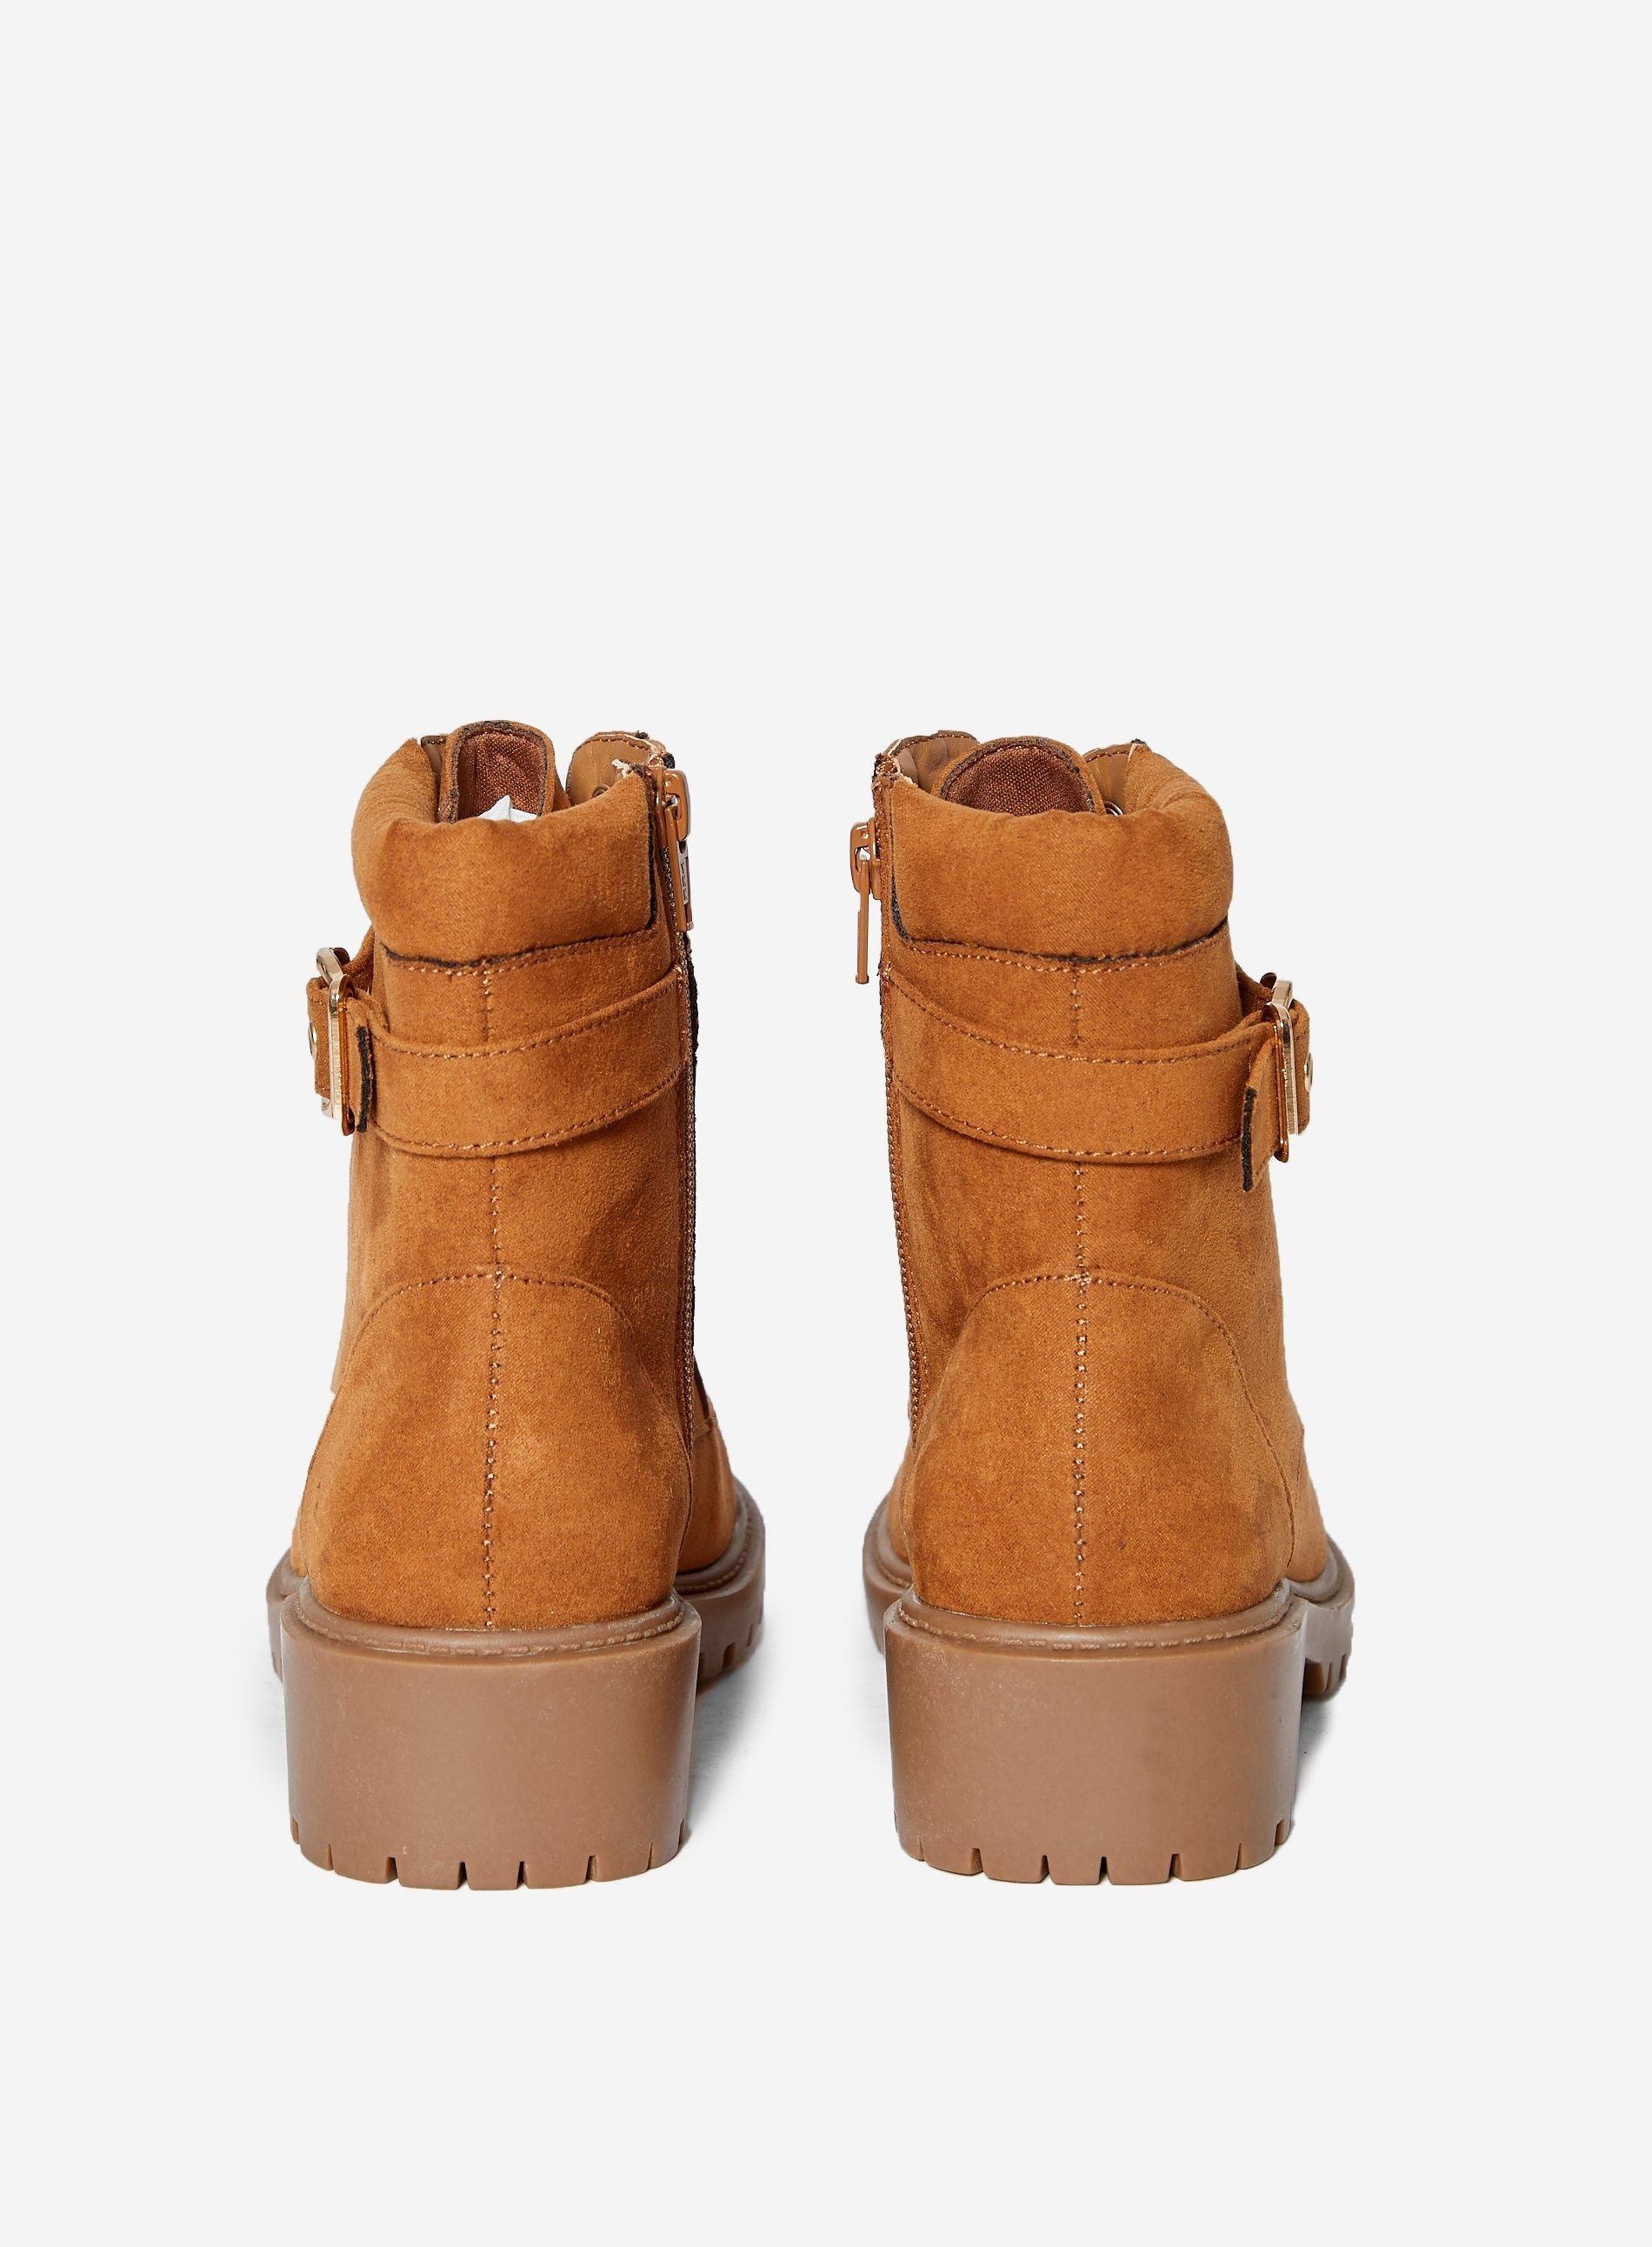 Dorothy Perkins Womens Tan Mona Biker Ankle Boots Lace Up Casual